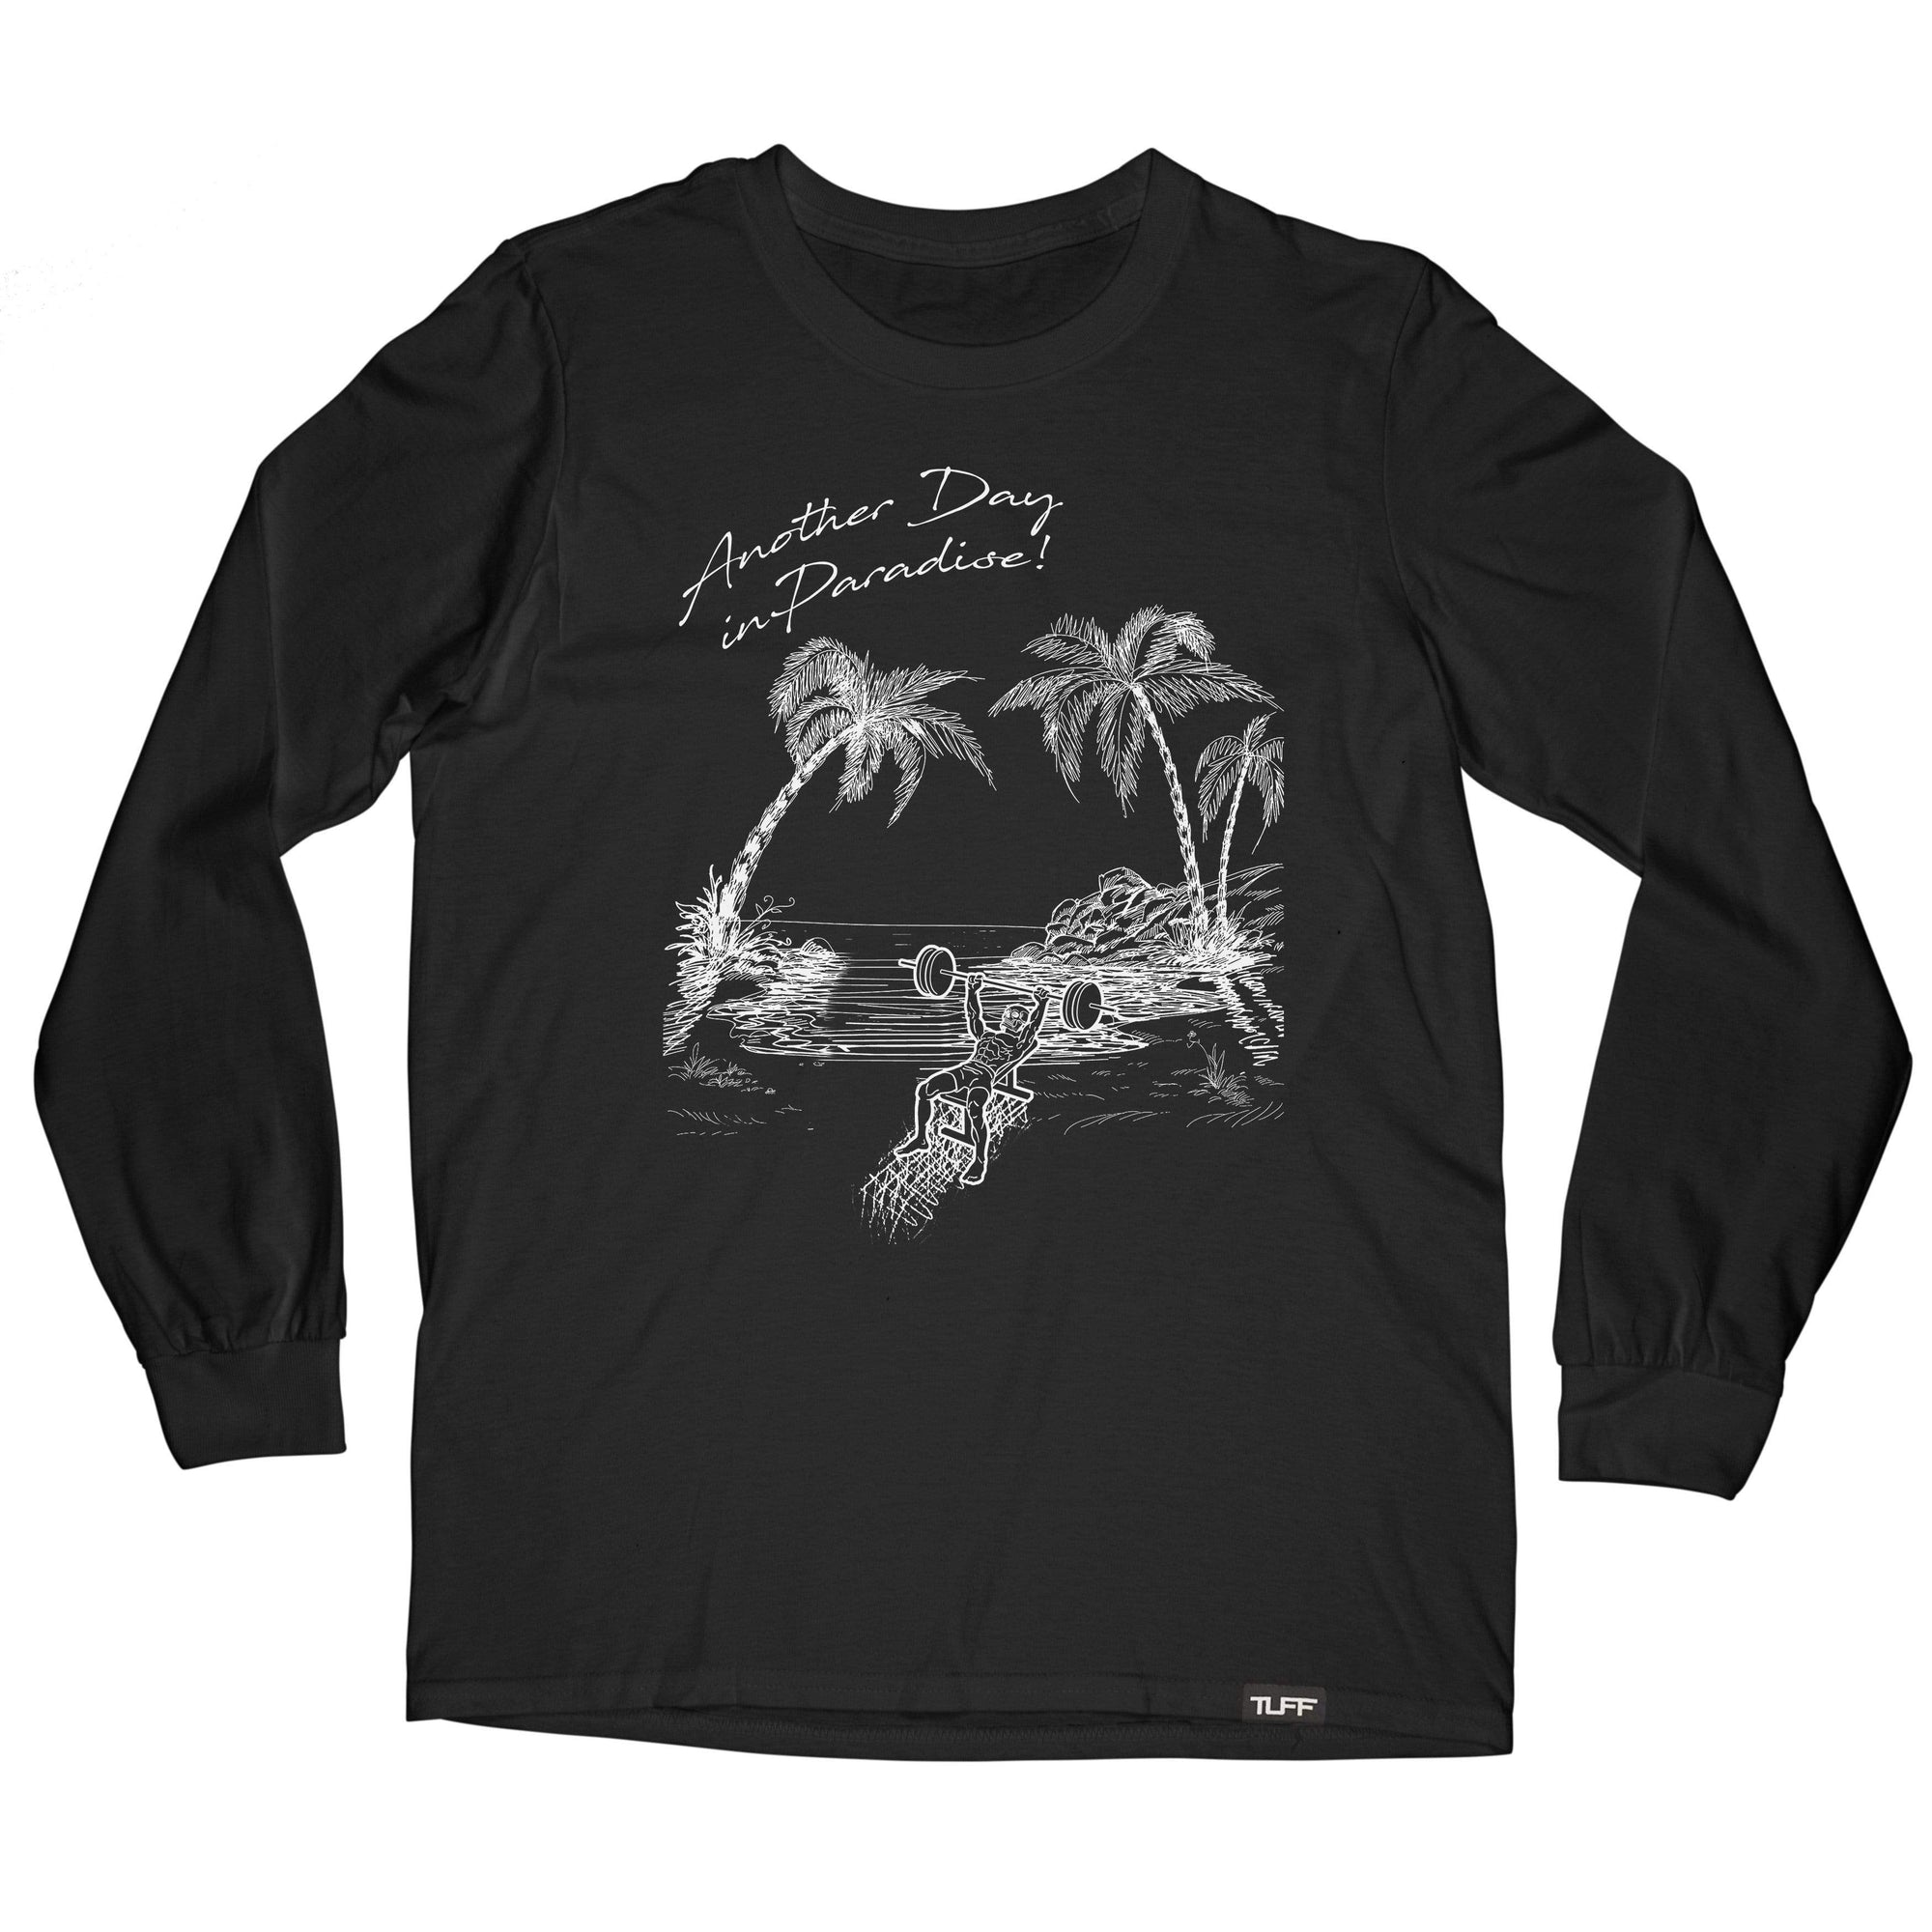 Another Day in Paradise Long Sleeve Tee S / Black TuffWraps.com